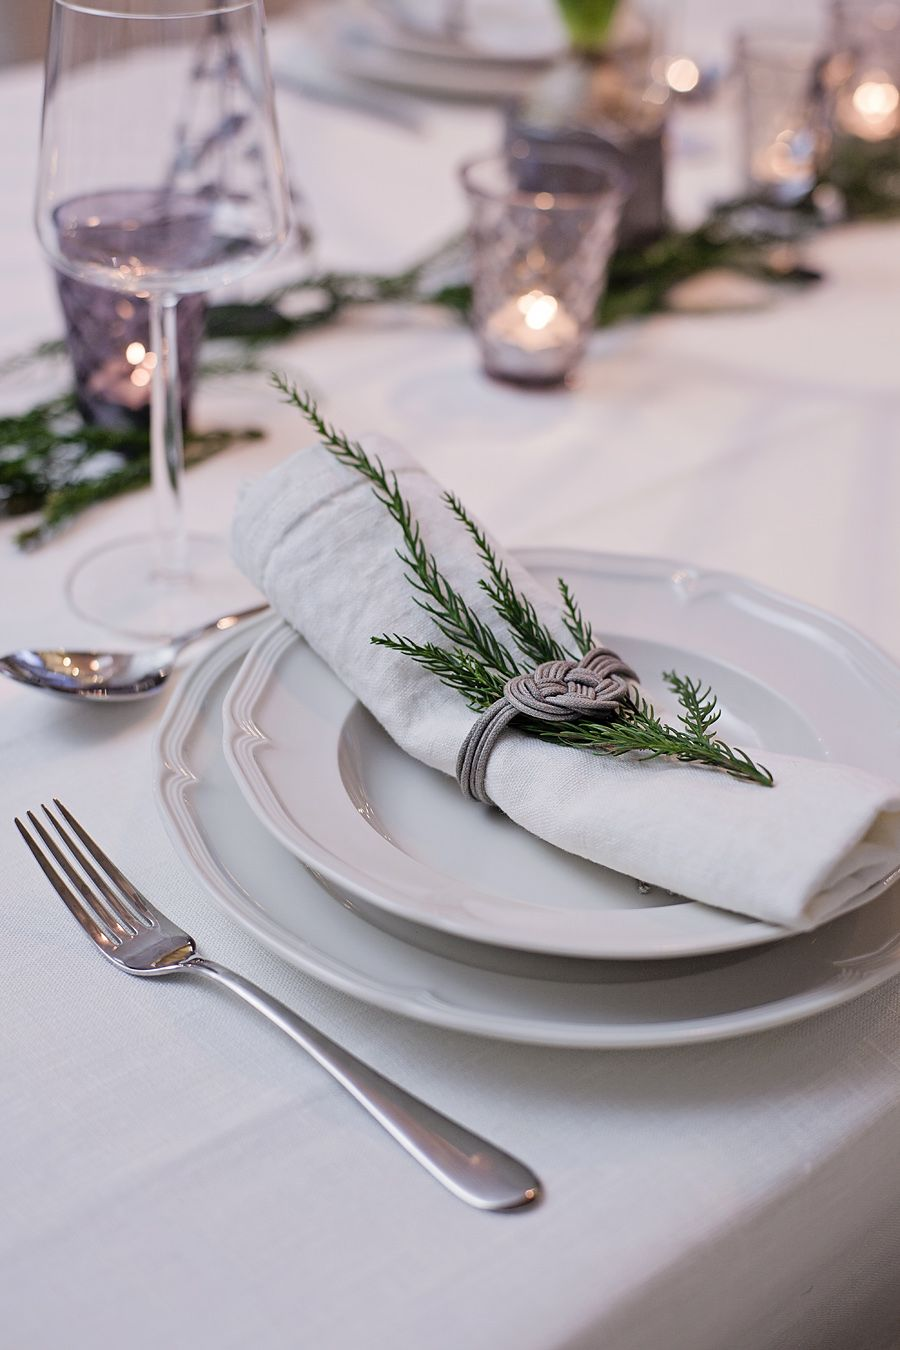 Greenery tucked in with a linen napkin & wrapped with a cord tied in a nautical knot / Photo Krista Keltanen